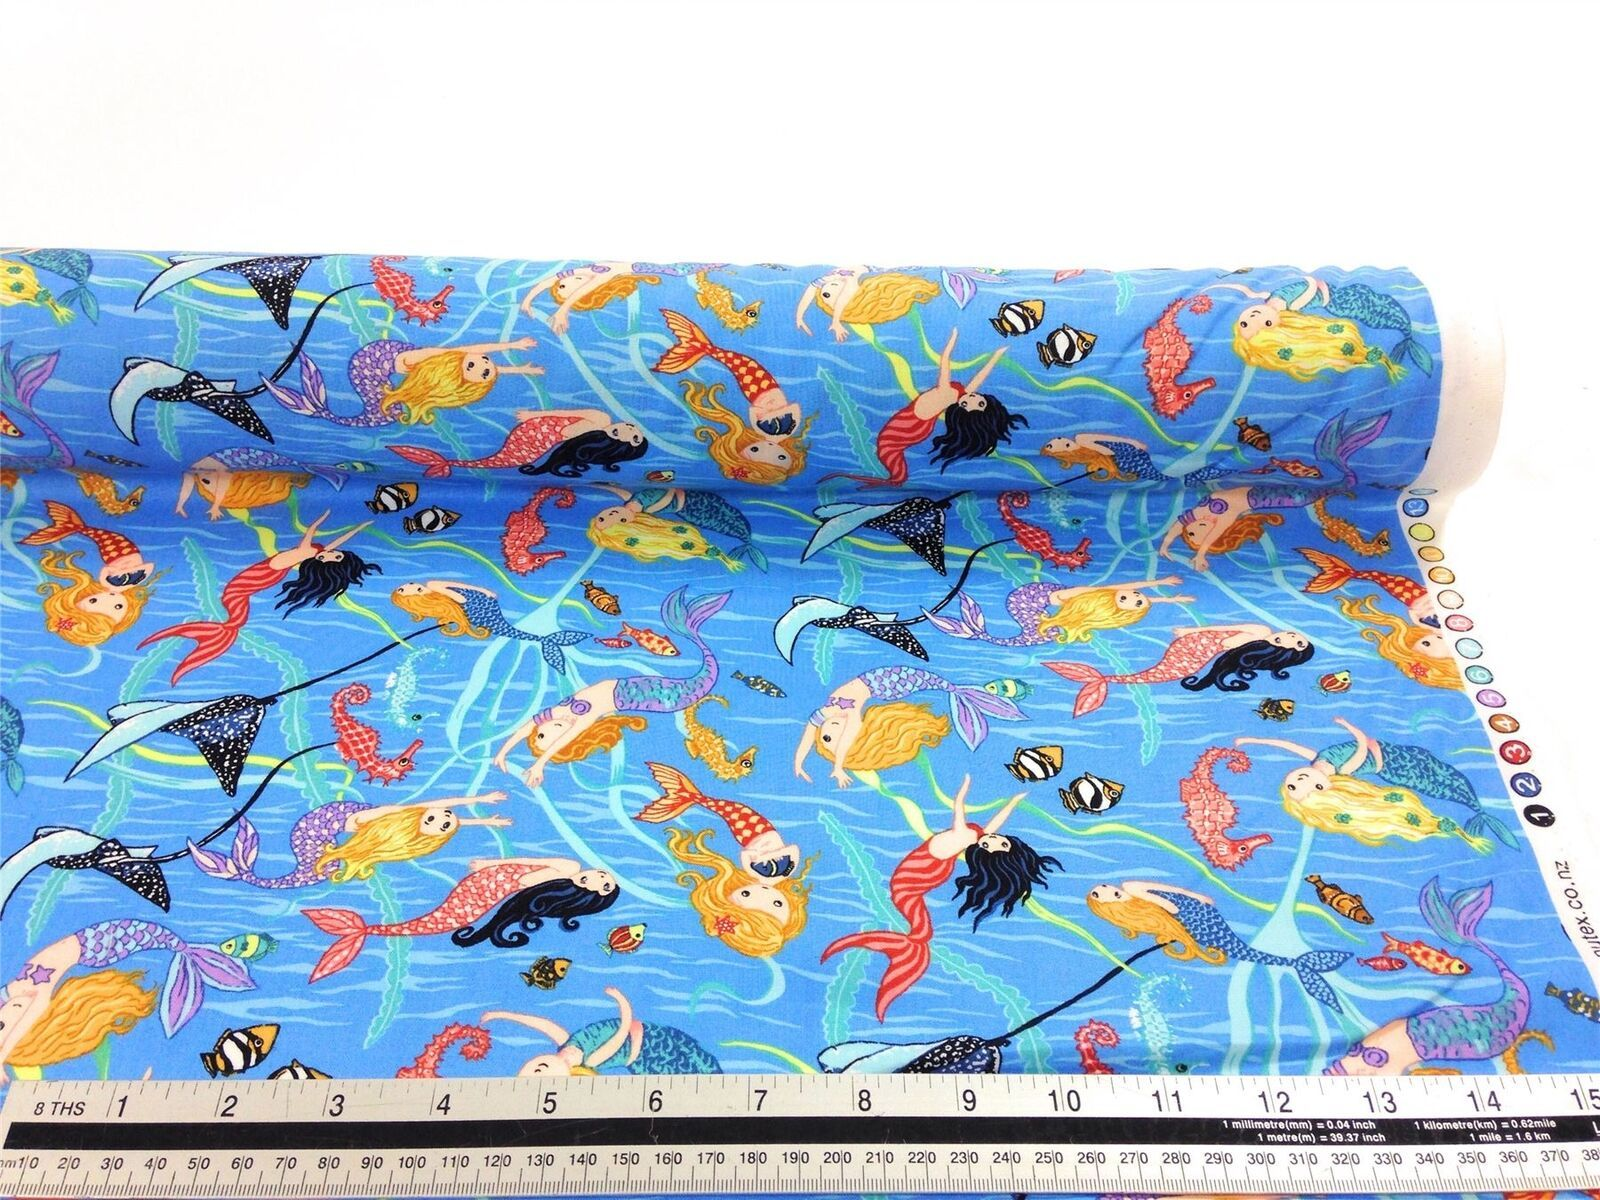 Swimming Mermaids Blue 100% Cotton High Quality Fabric Material 3 Sizes